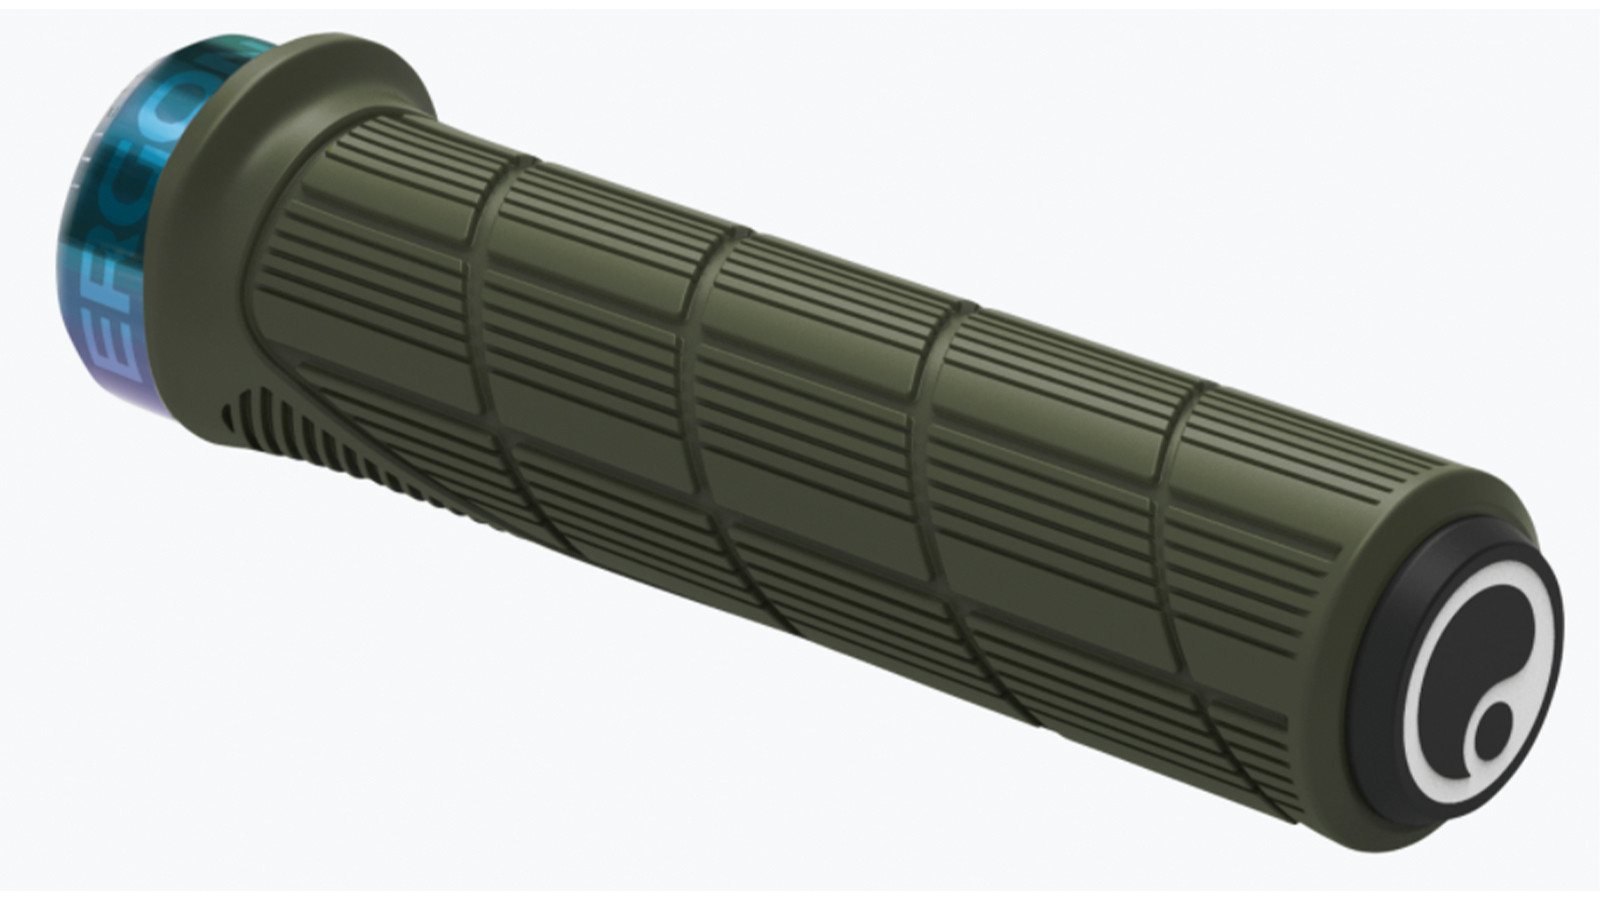 ERGON Launches Revised GD1 Grip